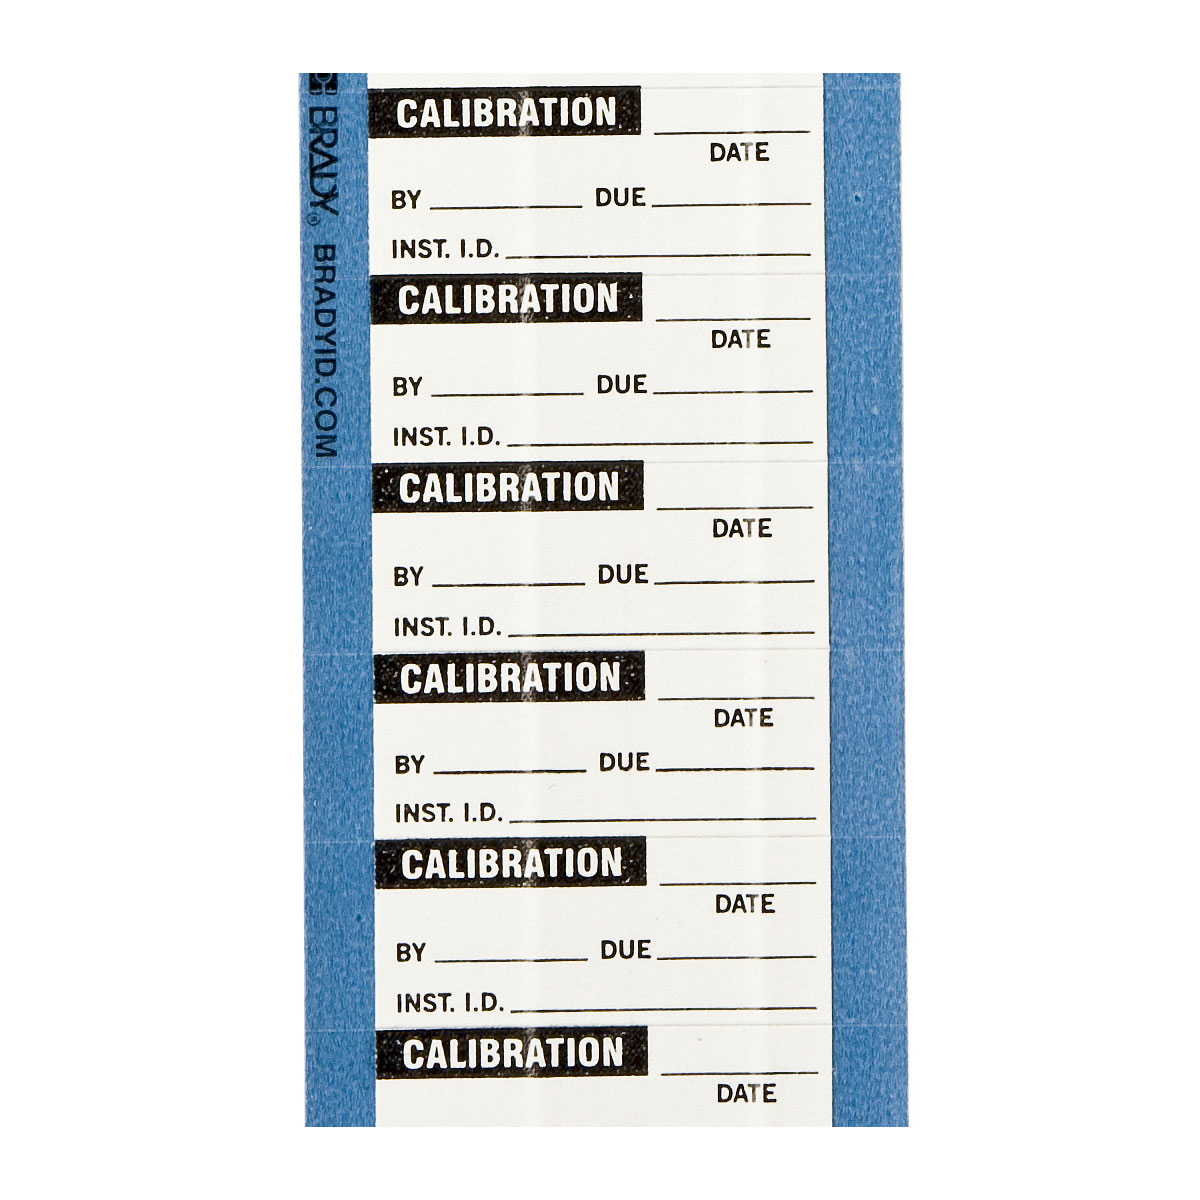 Brady part wo 64 calibration labels for Brady label templates